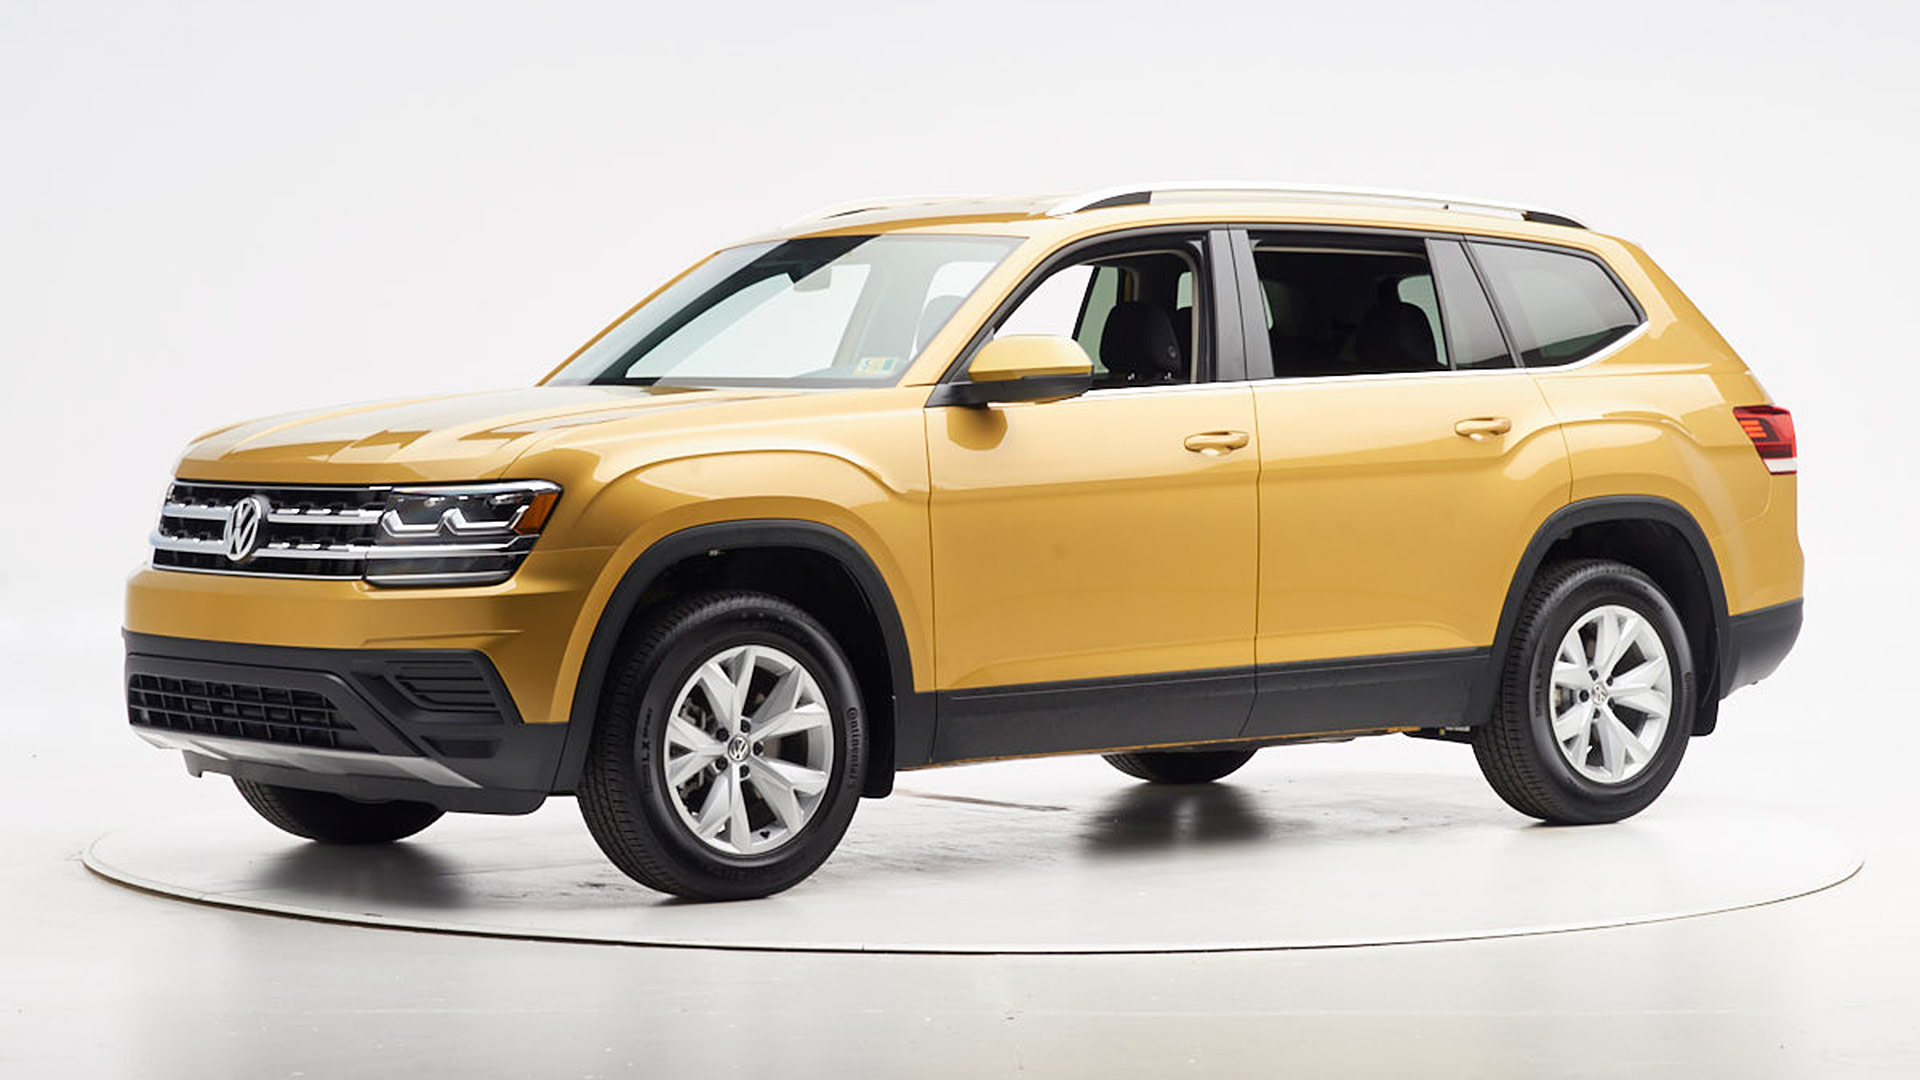 2018 Volkswagen Atlas 4-door SUV